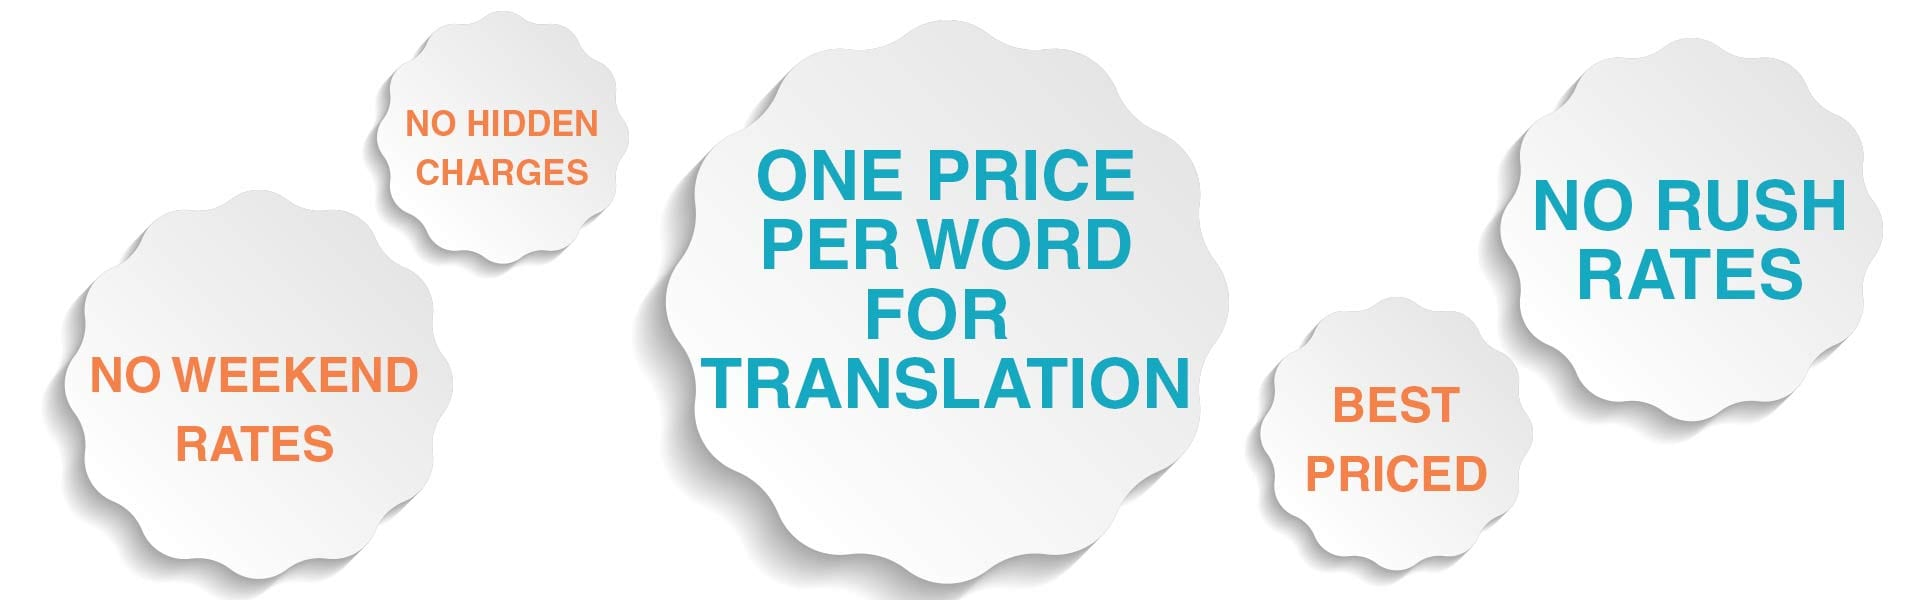 Affordable Translation Prices -Affordable Translation Rates per Word